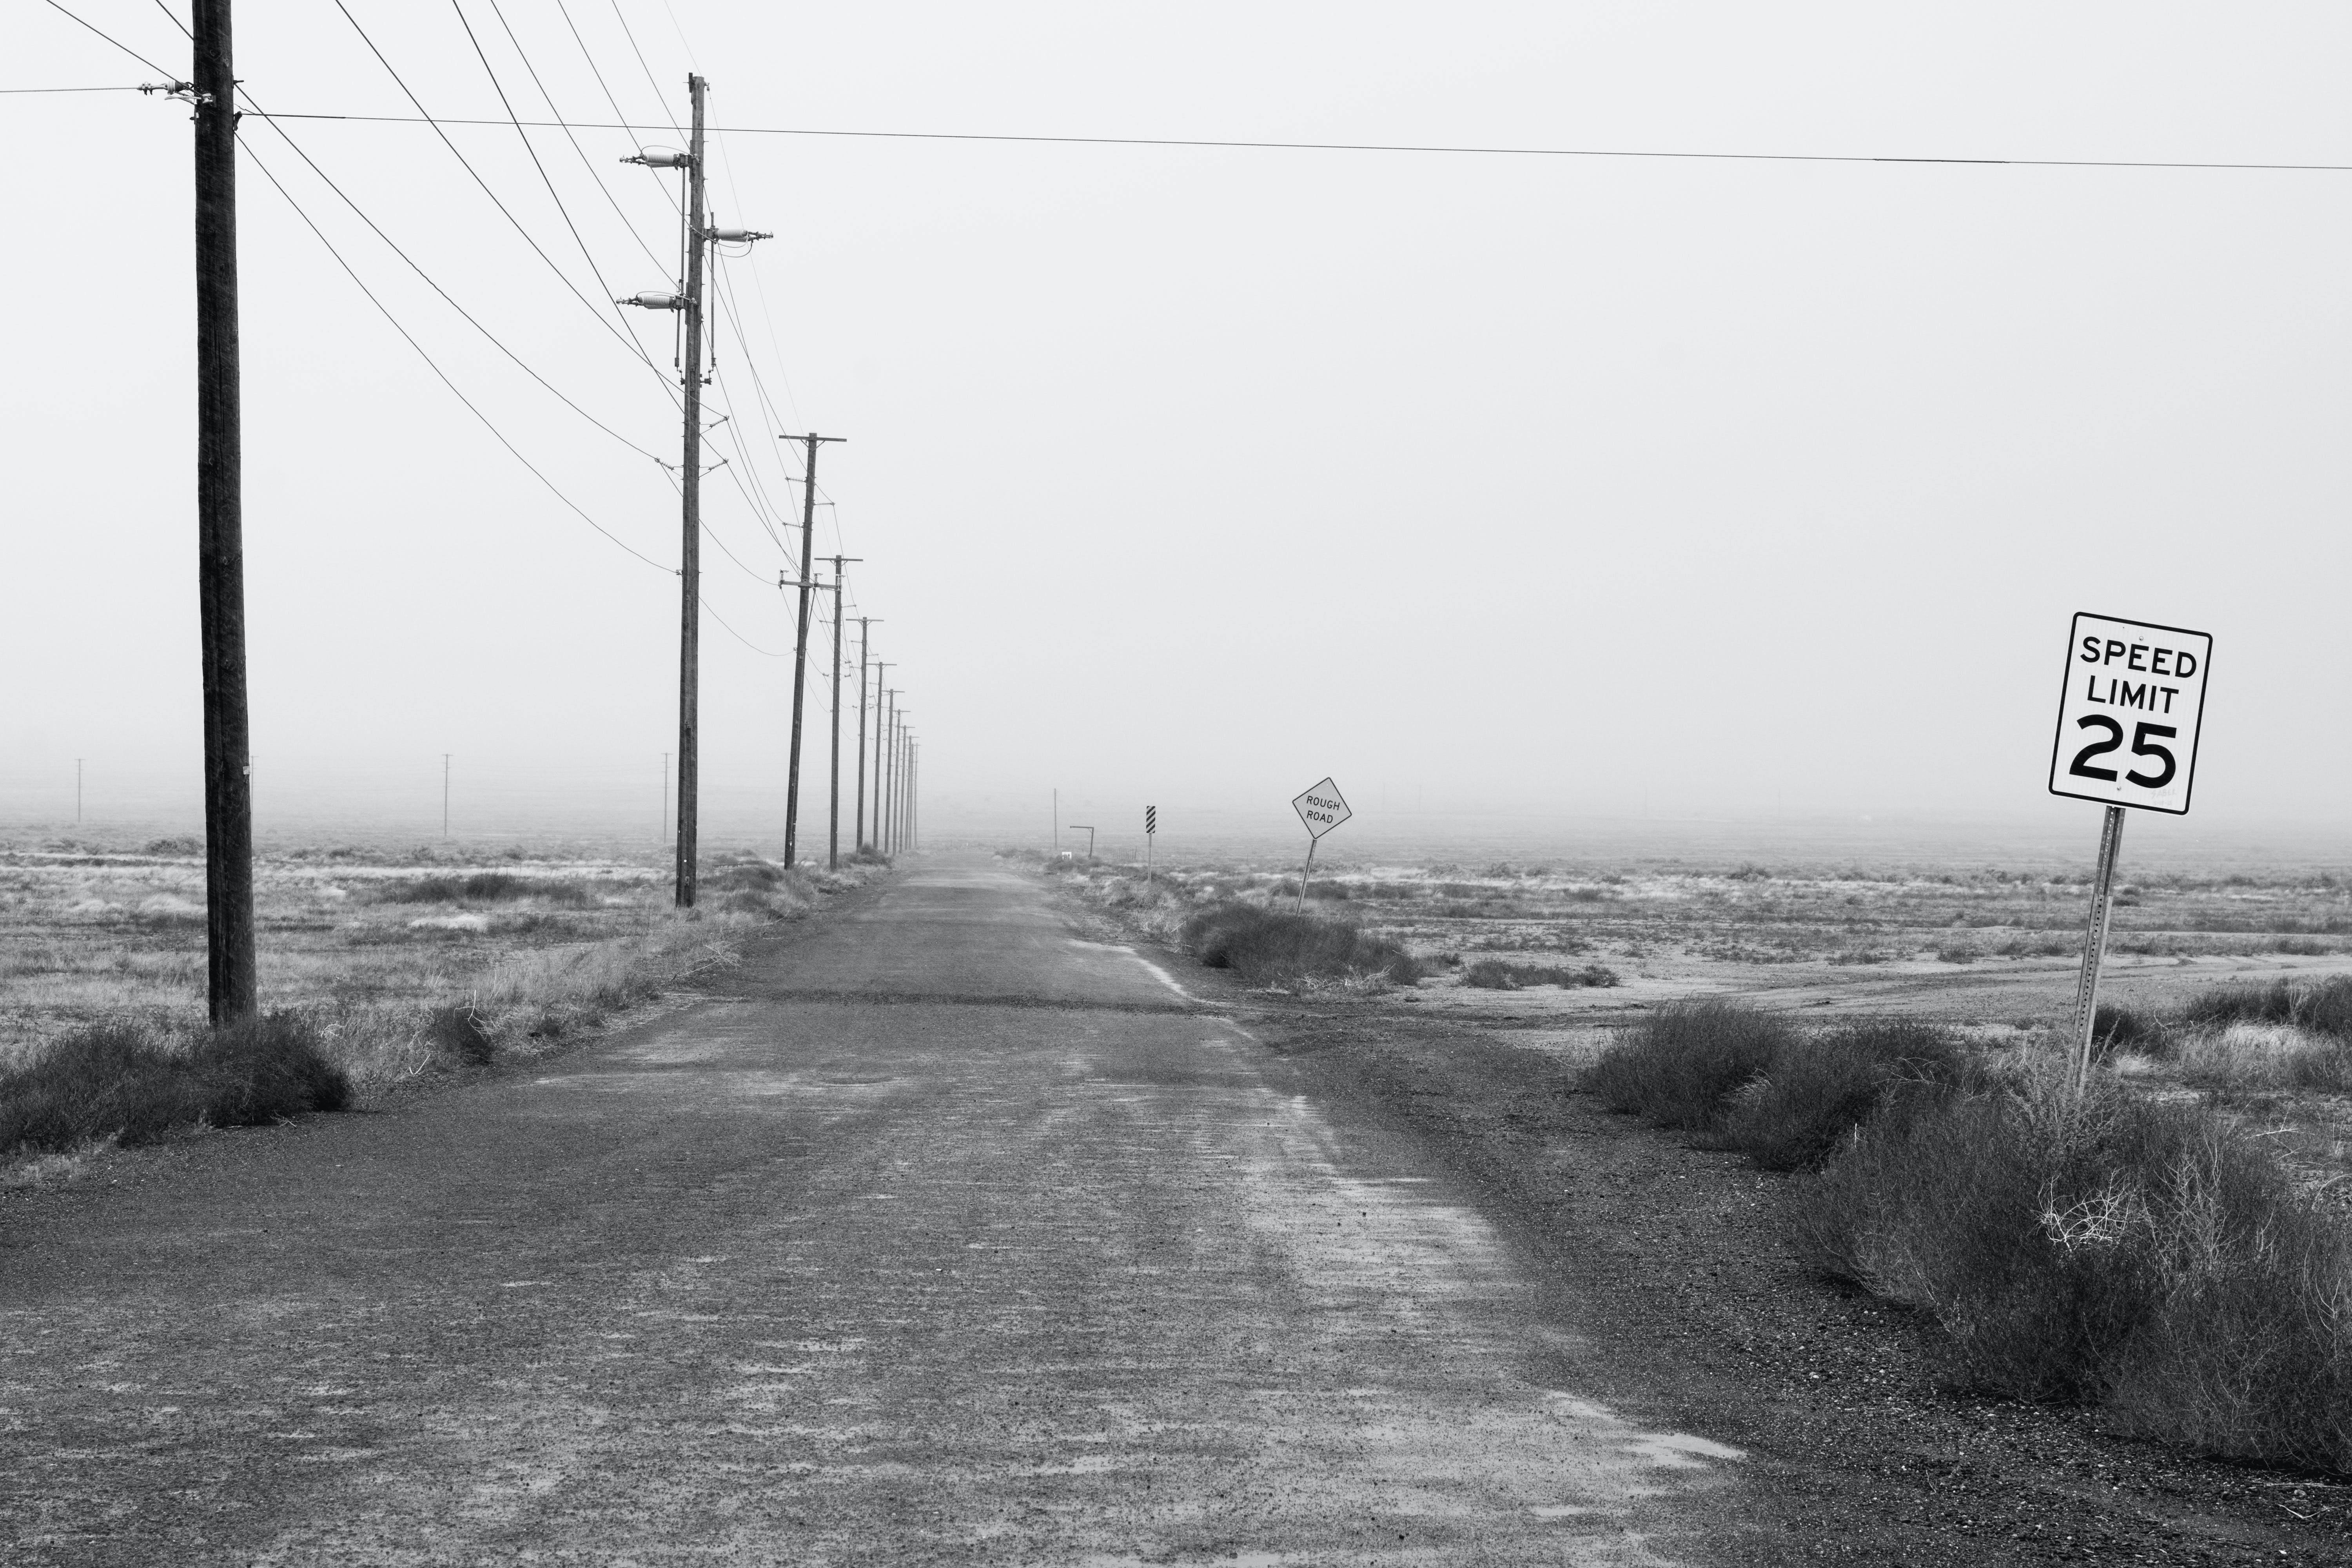 Monochrome Photography of an Empty Road With Speed Limit Sign